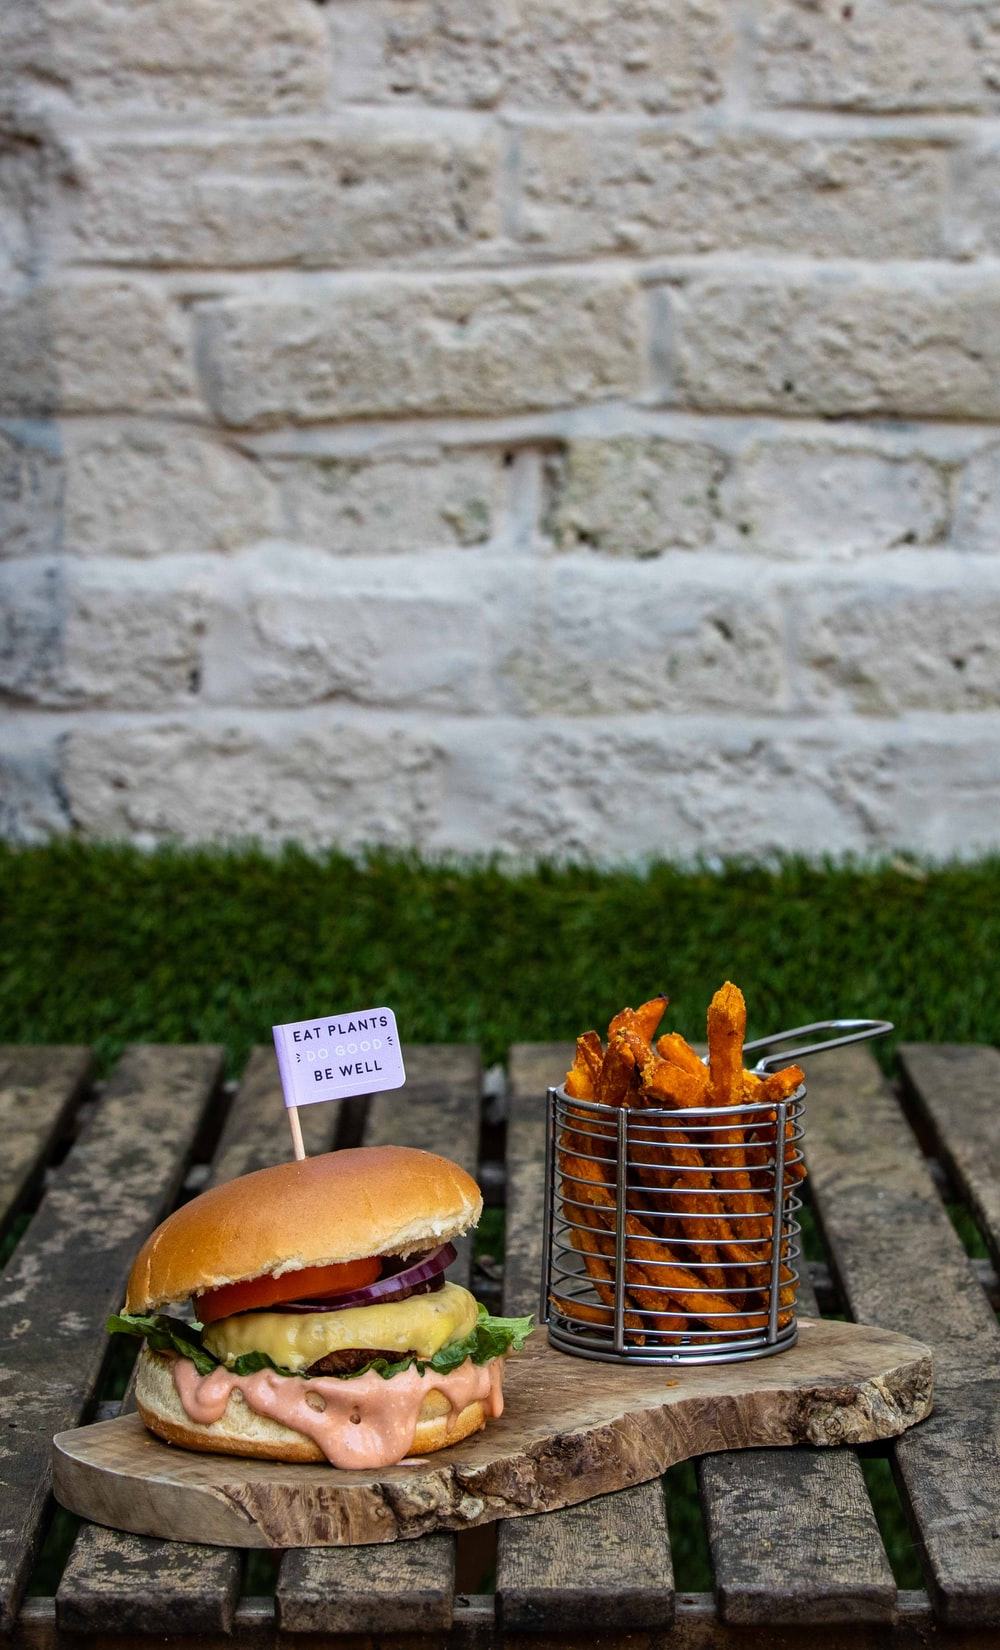 meat burger near basket of French fries